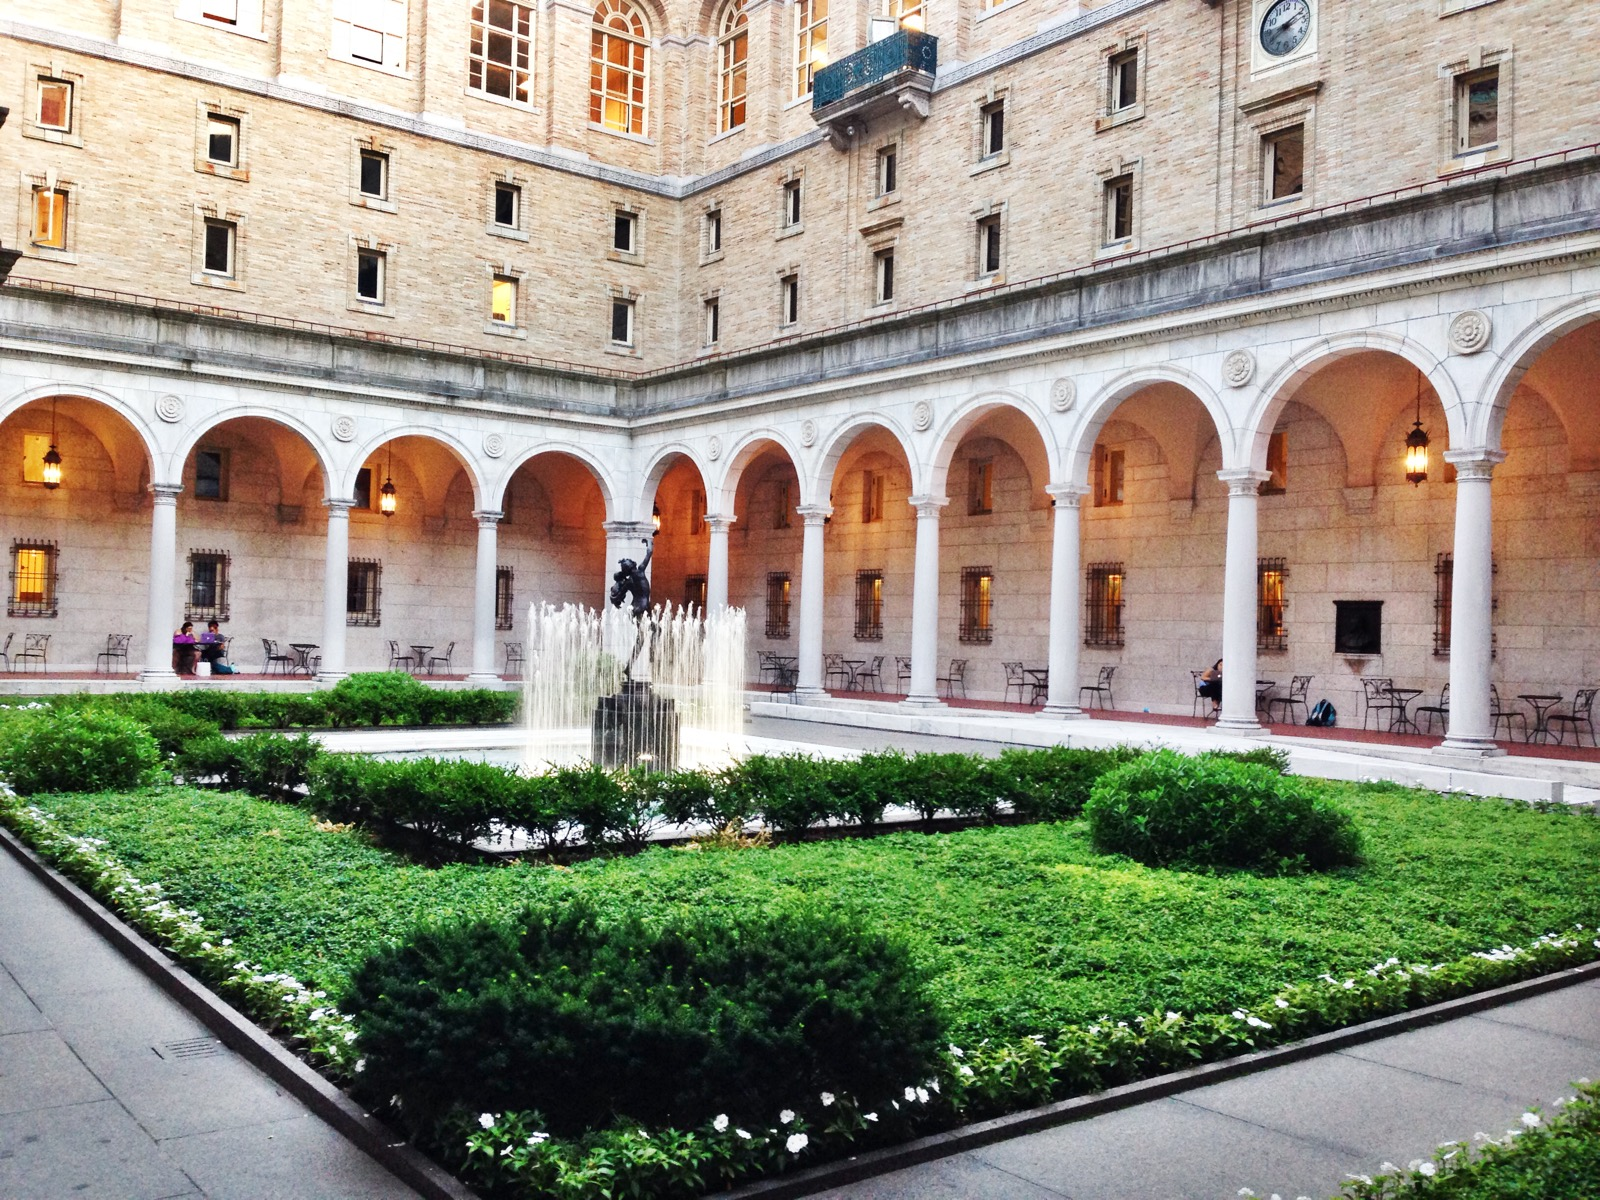 {The Boston Public LIbrary is GORGE! So happy I took the time to stop by}